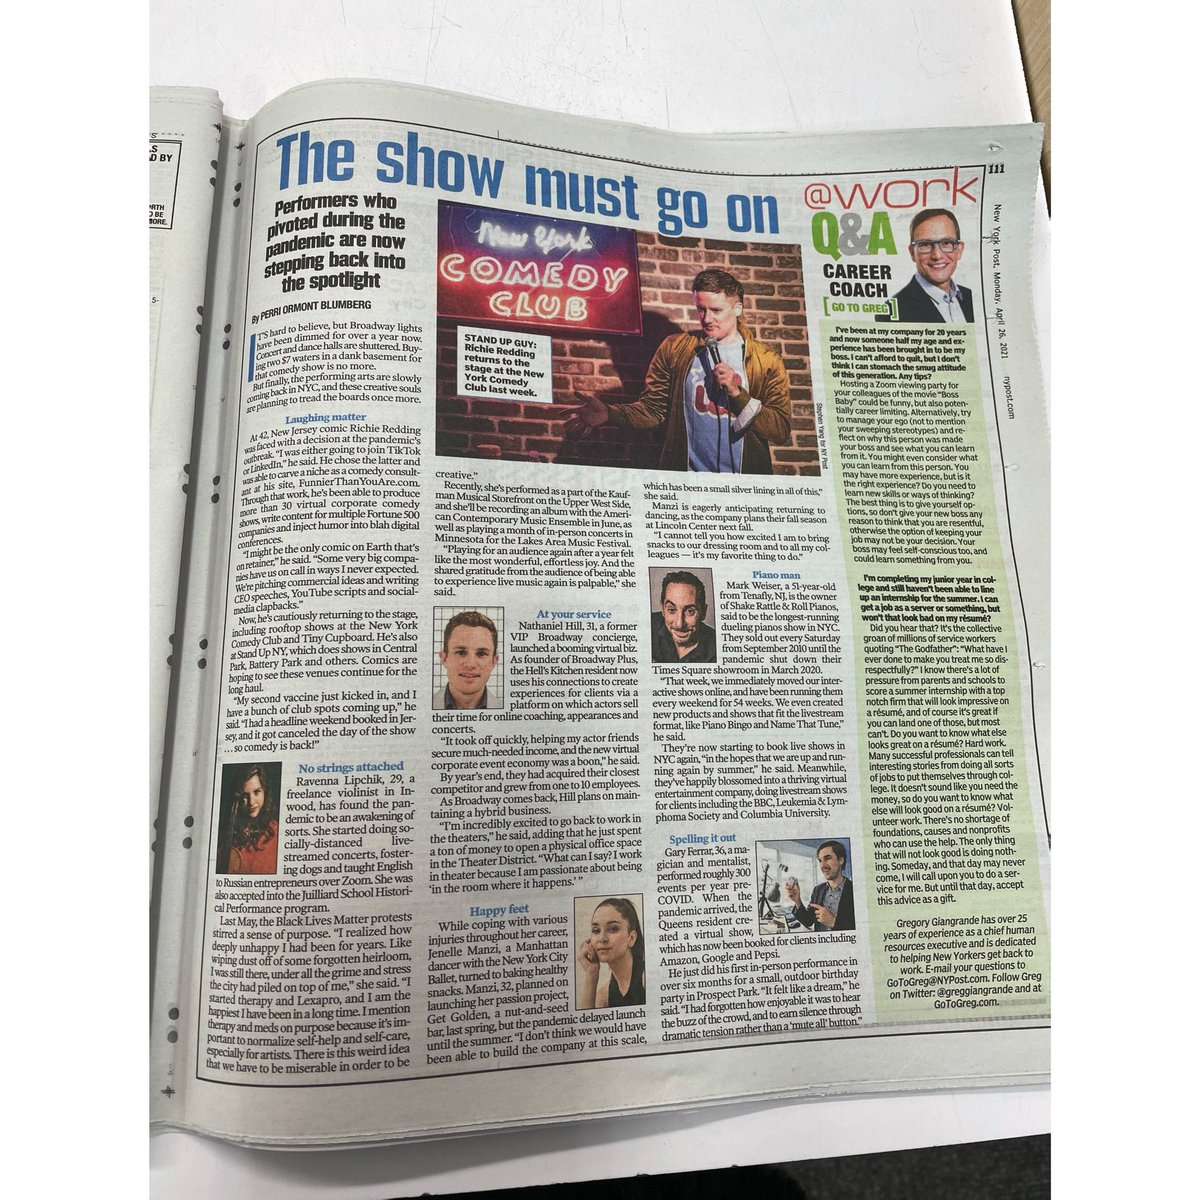 Yesterday, the @NyPost ran an article featuring myself and 7 artists in NYC sharing our career paths amid the pandemic. Today, they ran the same article in print, but omitted the only TWO black artists featured. My request to the @NYPost is simply this: DO BETTER. Thank you.